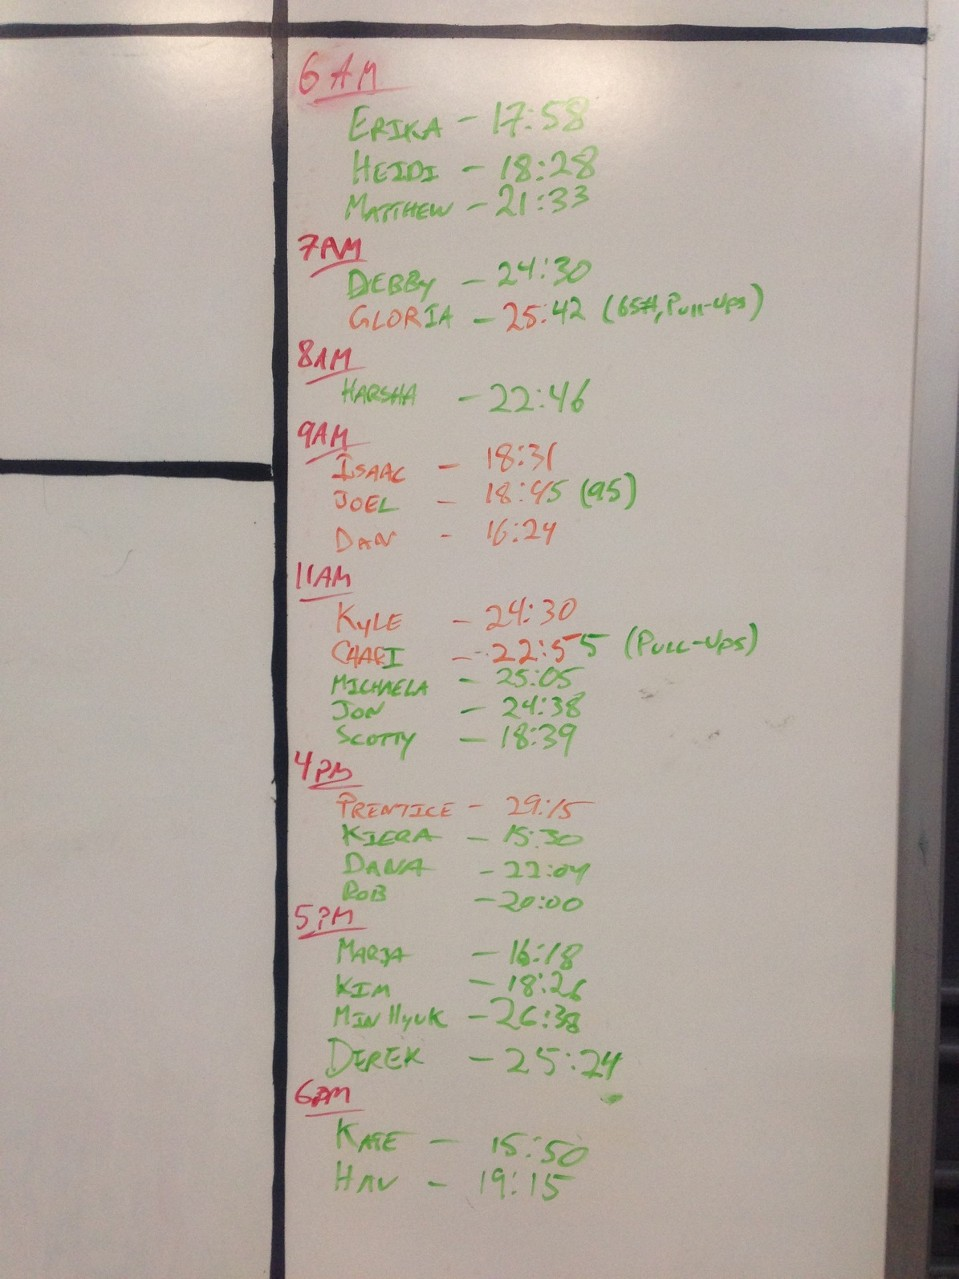 June 4 WOD Results